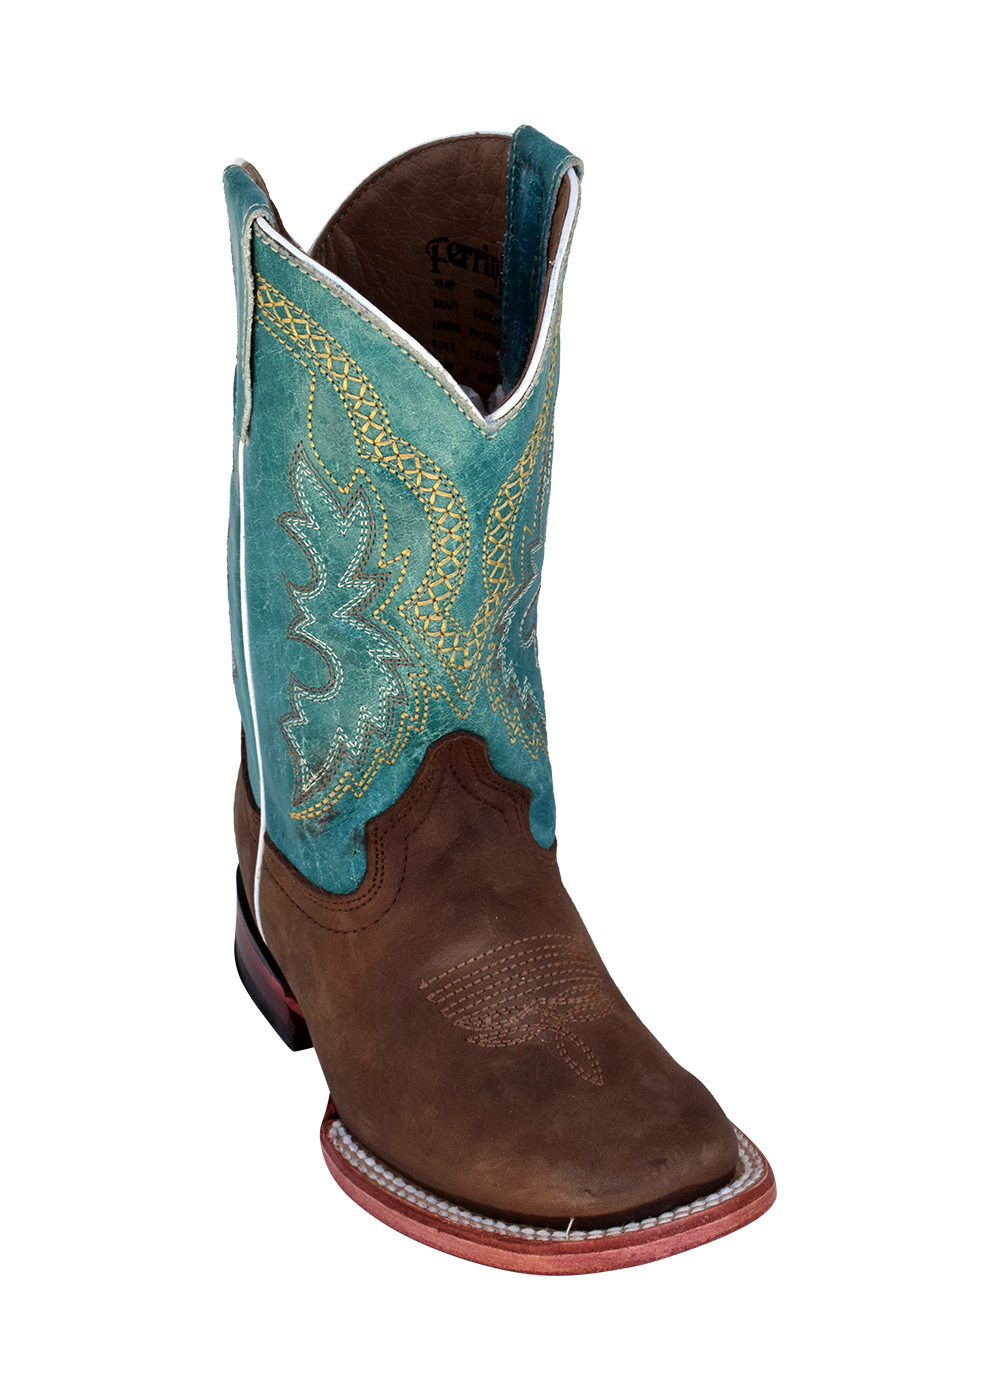 Ferrini Kid's Cowboy Boot in Dallas Chocolate/Turquoise